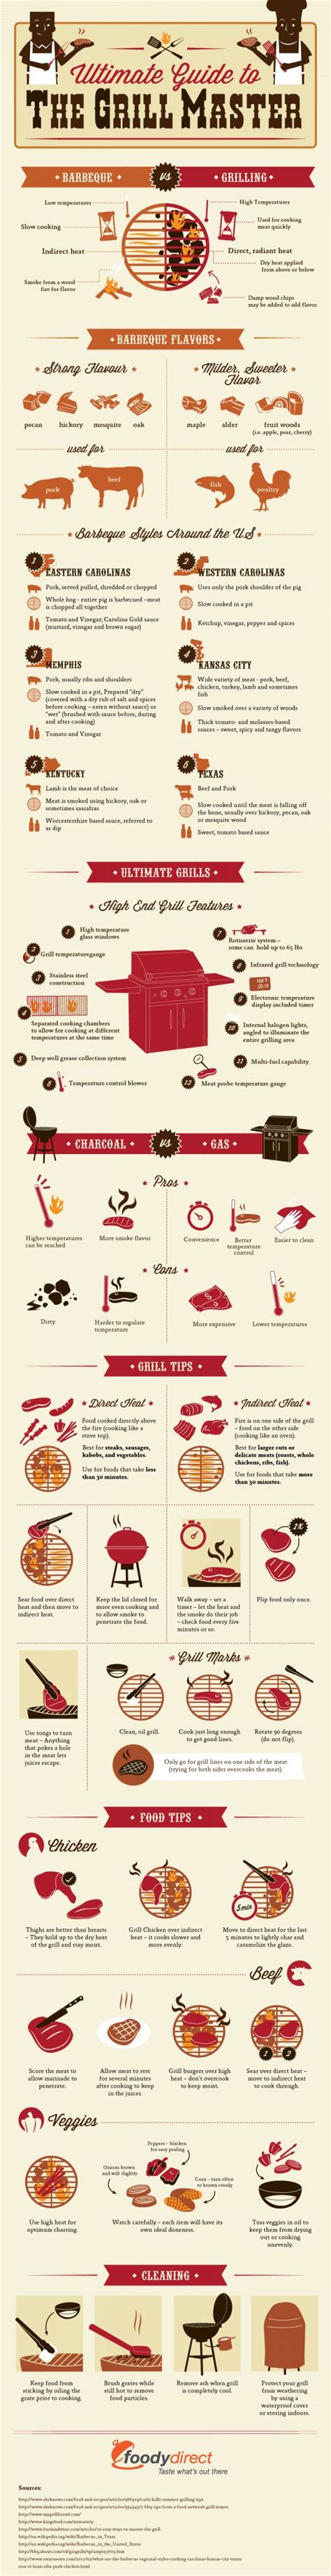 13 Best Grilling And Kitchen Infographics Images On